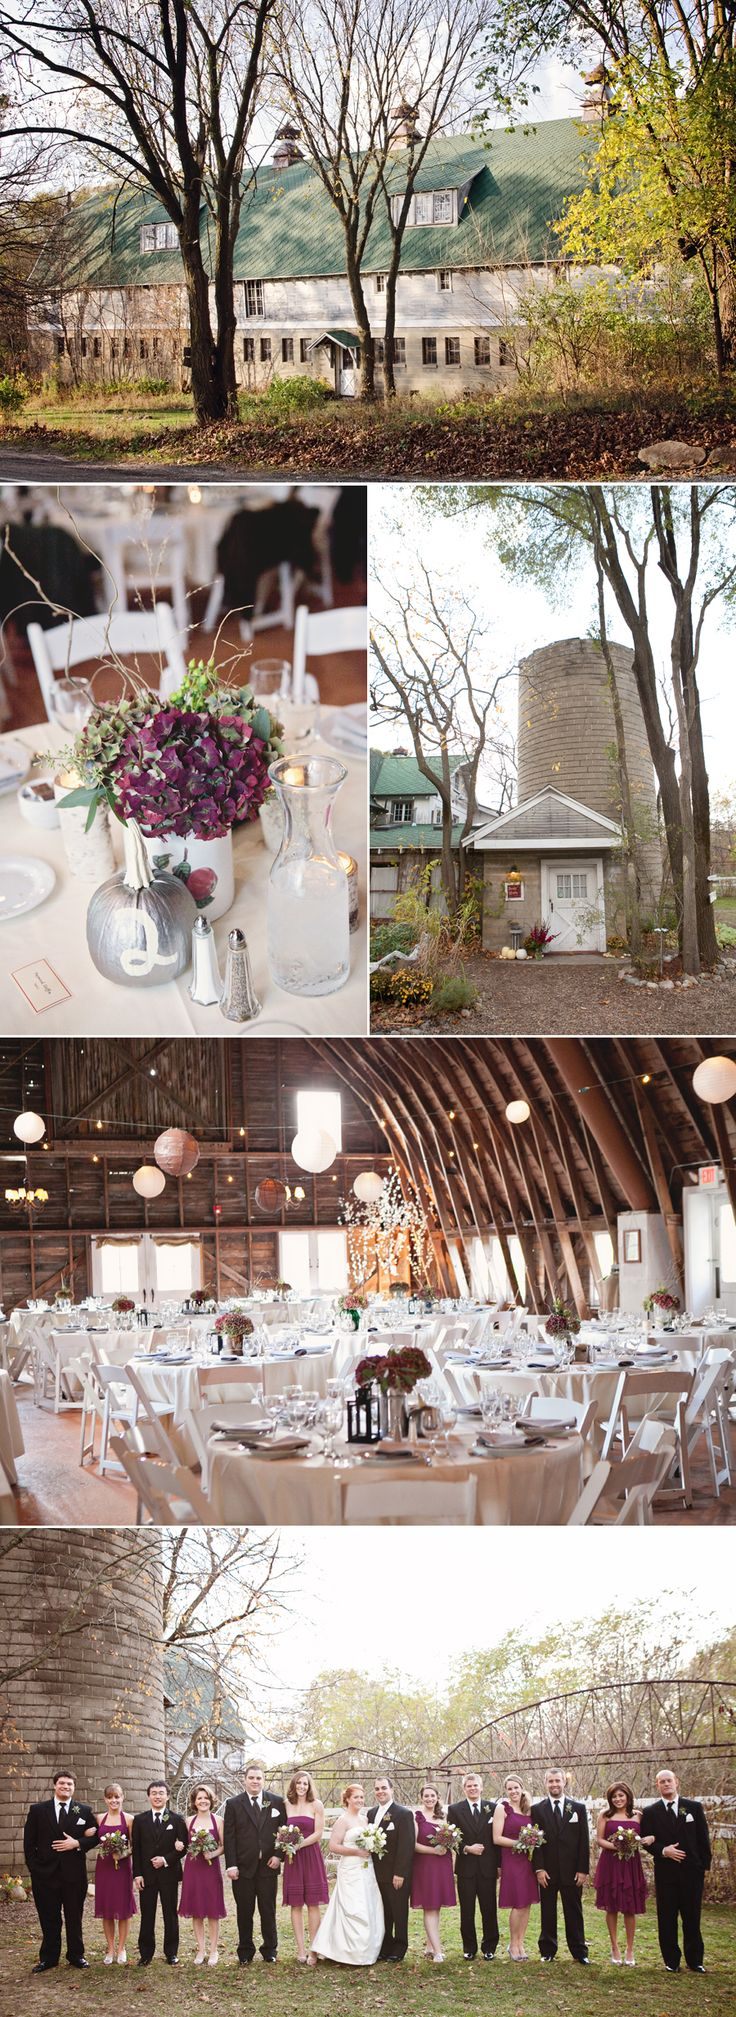 Adorable purple and fuchsia fall barn wedding at the Blue Dress Barn in Benton Harbor, Michigan.